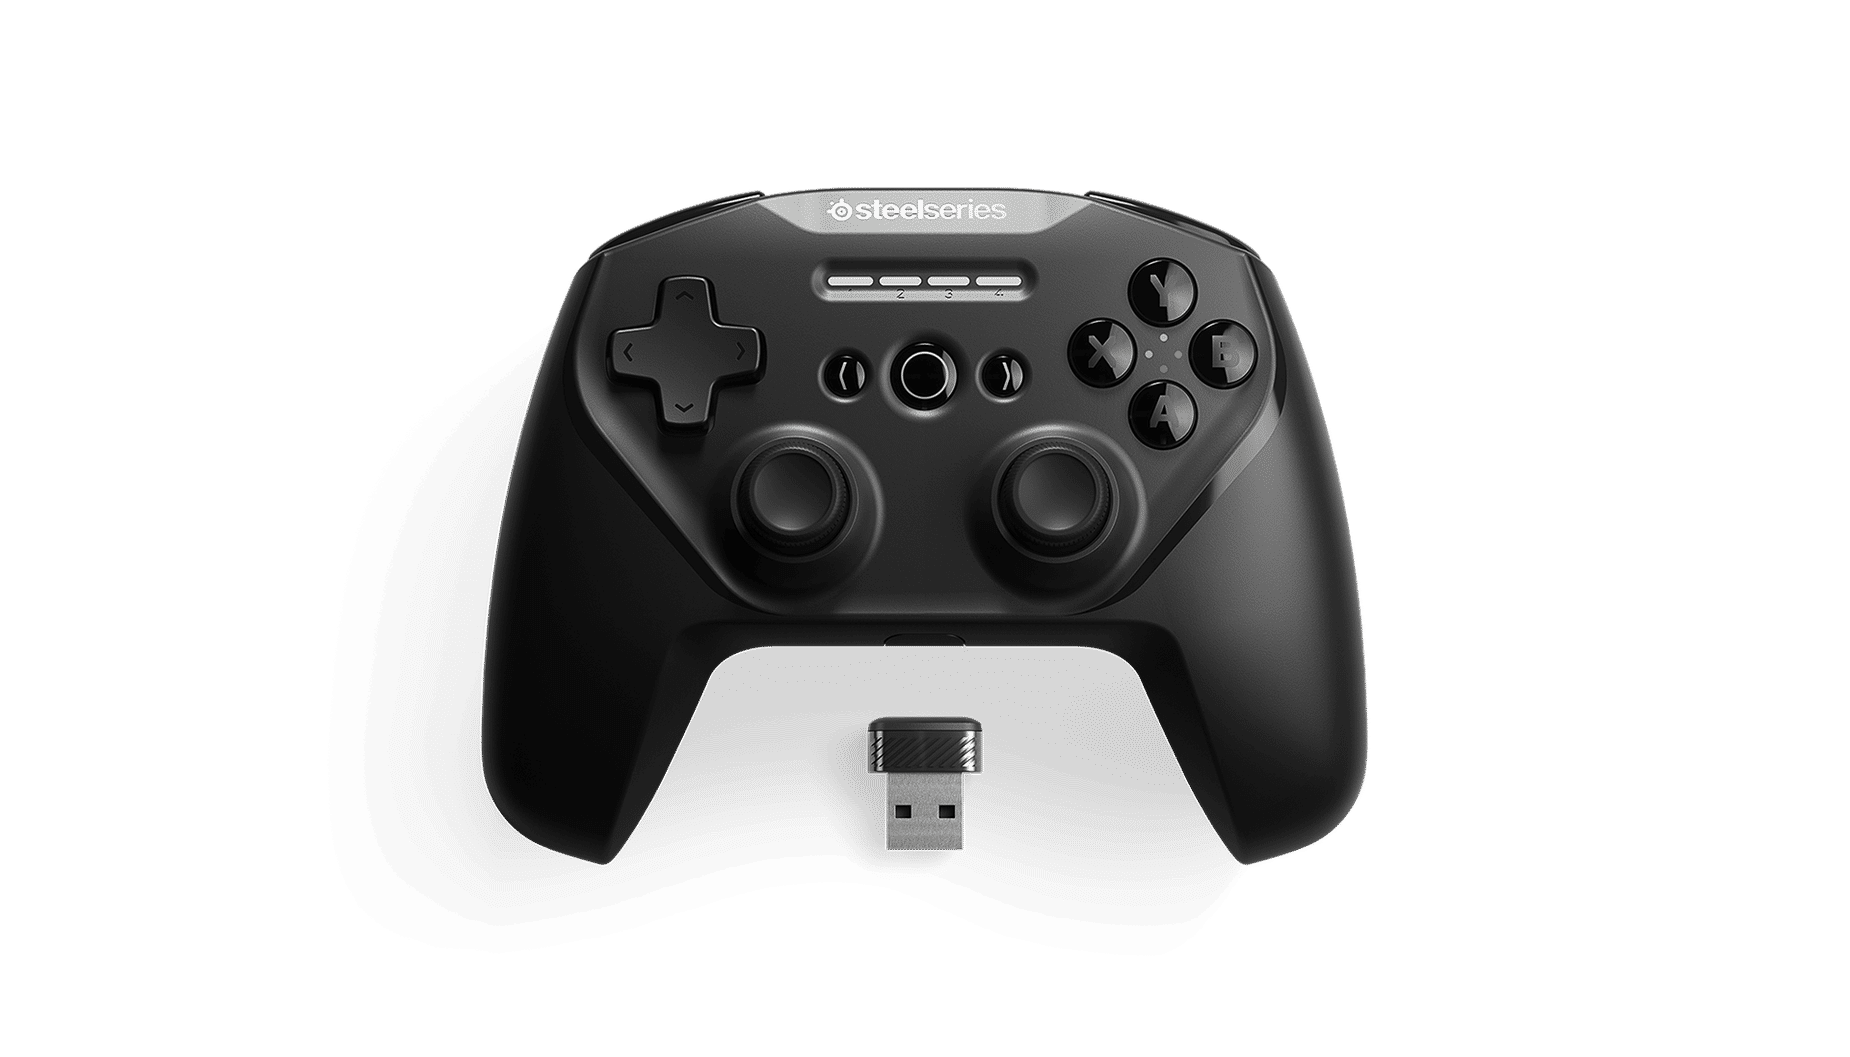 steelseries STRATUS DUO bluetooth gaming controller android windows vr